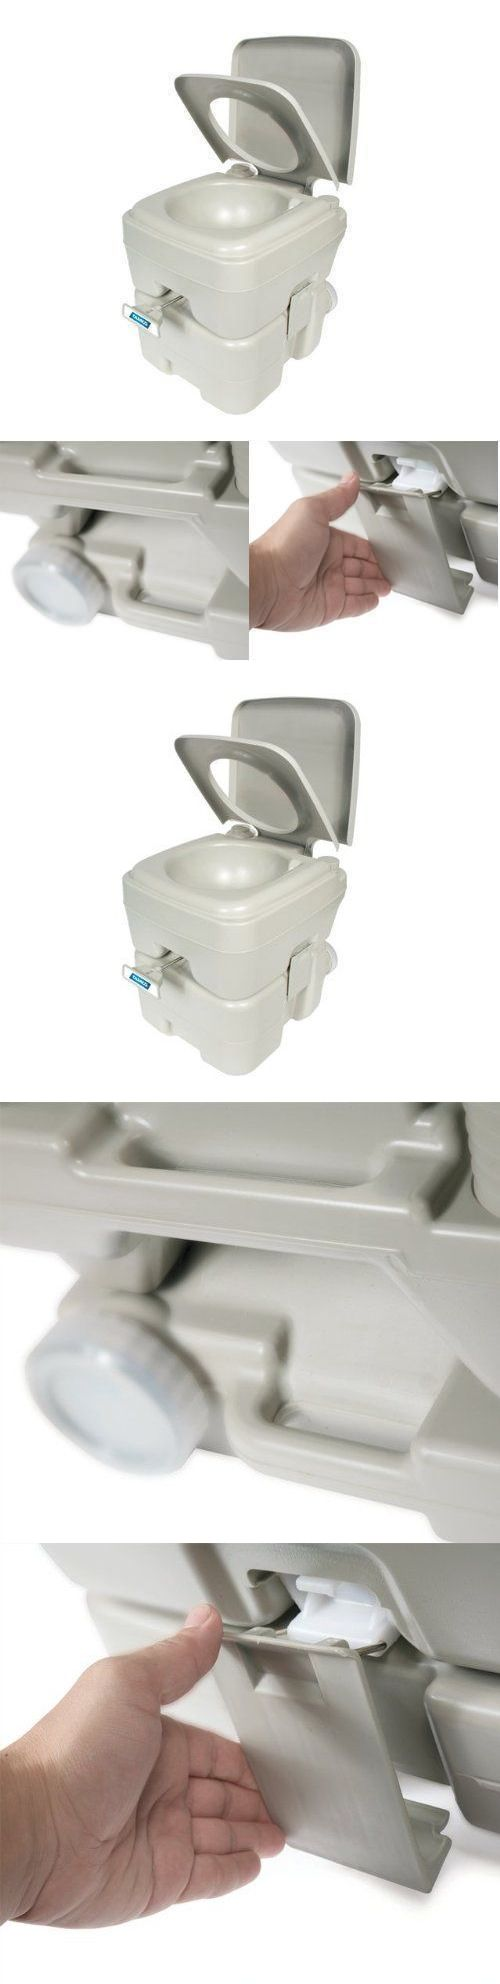 Portable Toilets and Accessories 181397: New! Camco Heavy Duty Portable Toilet On The Go Poop Seat Outdoor Travel Camping -> BUY IT NOW ONLY: $69.51 on eBay!